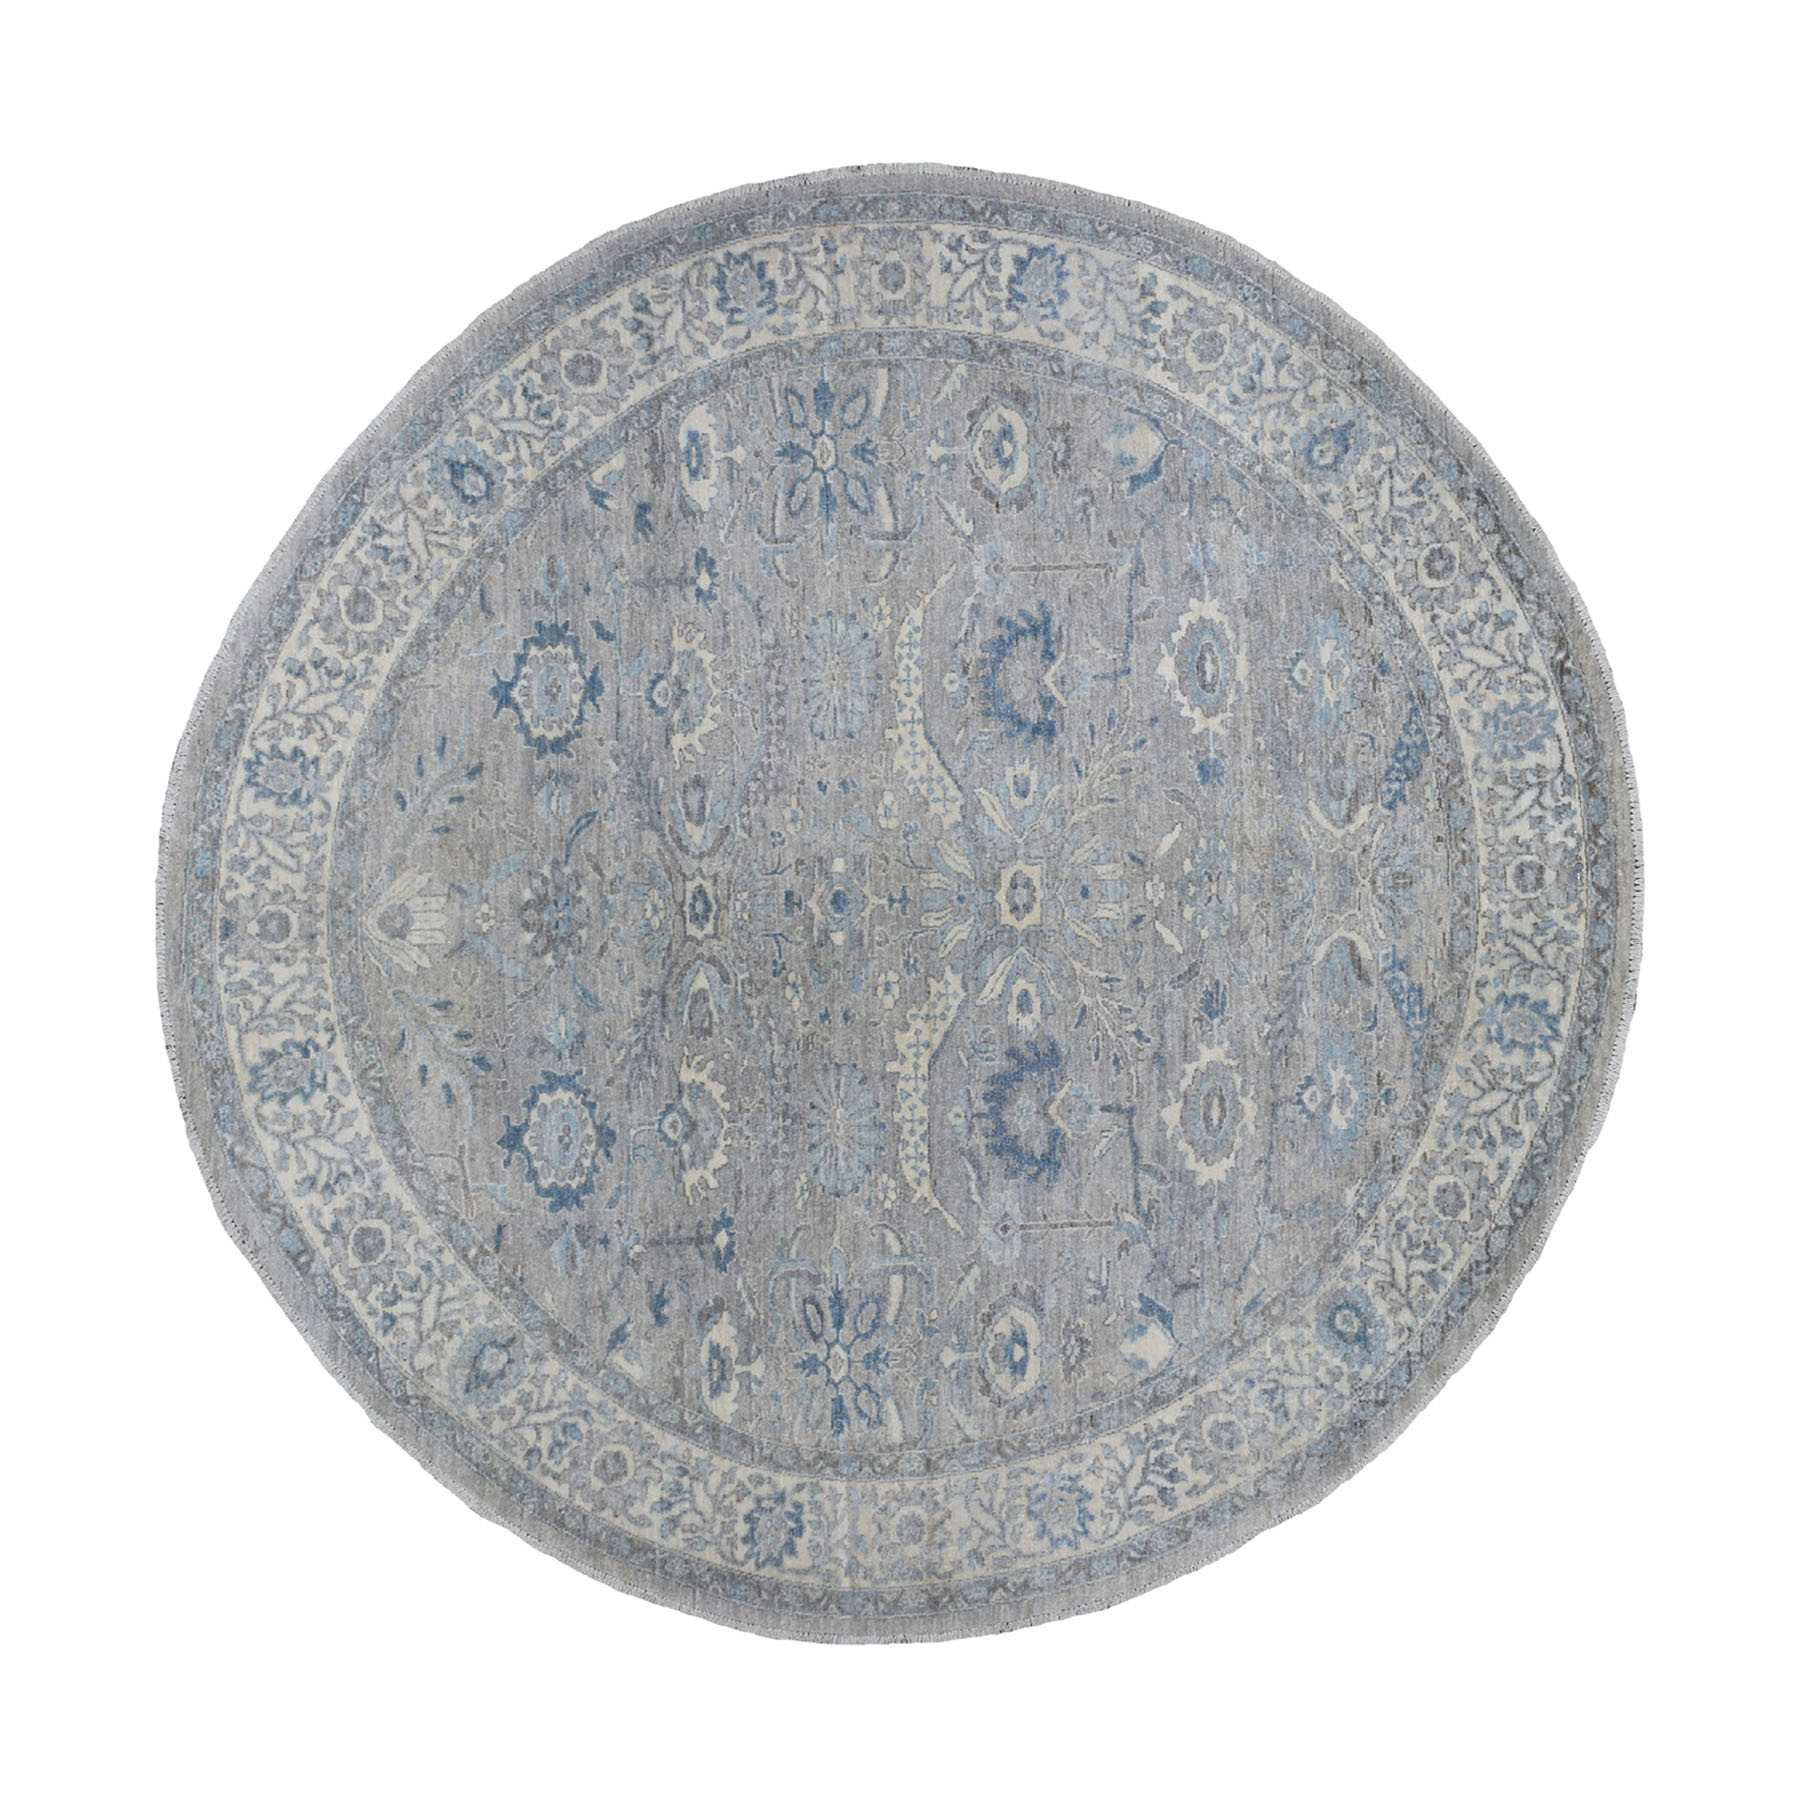 8'x8' Gray Afghan Peshawar with Ziegler Mahal Design Organic Wool Hand Woven Round Oriental Rug